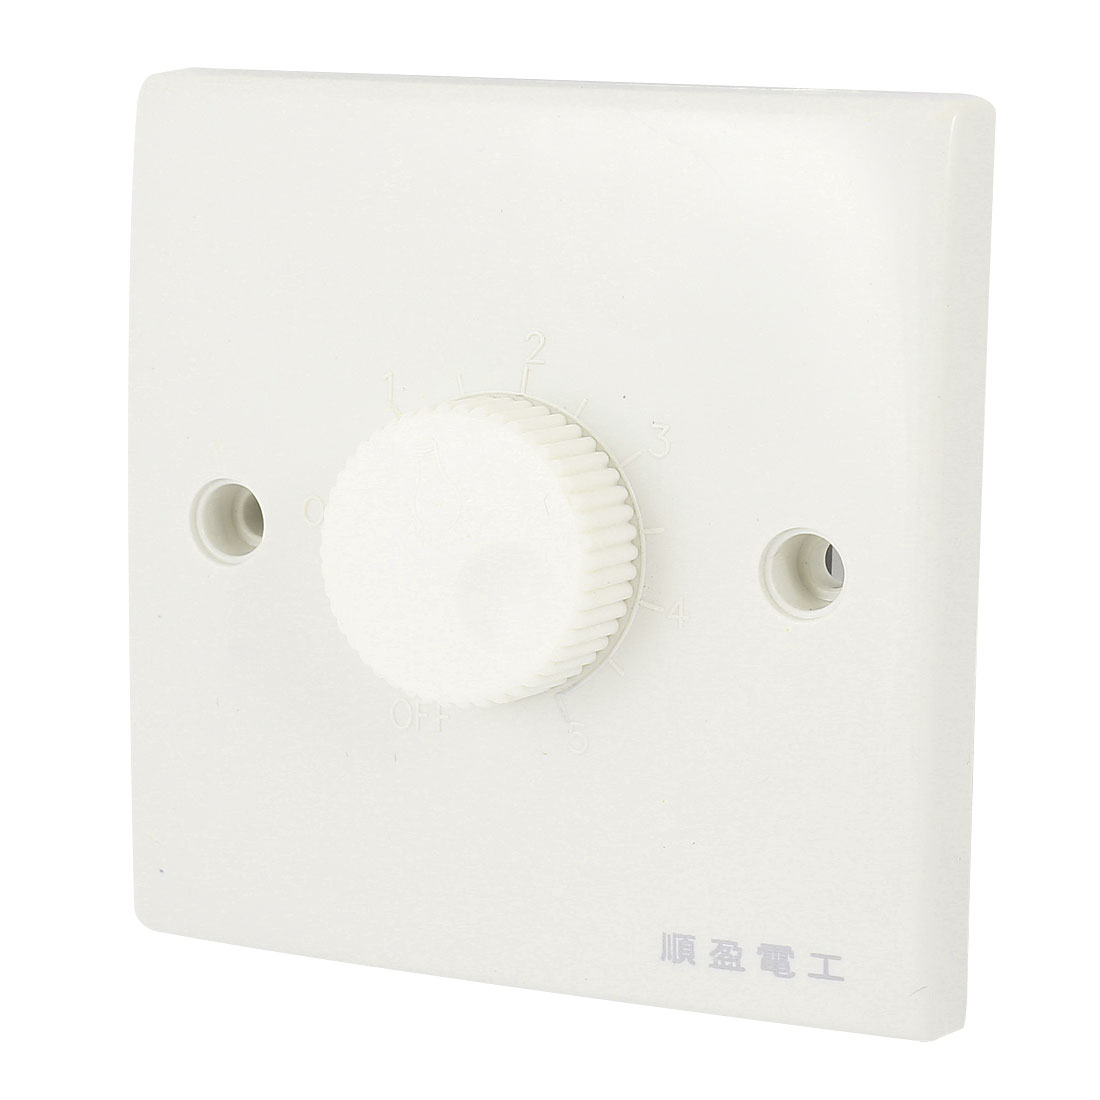 Wall Mounting Plastic Shell 5 Gear Rotatable Knob Dimmer Switch White AC 200V-250V